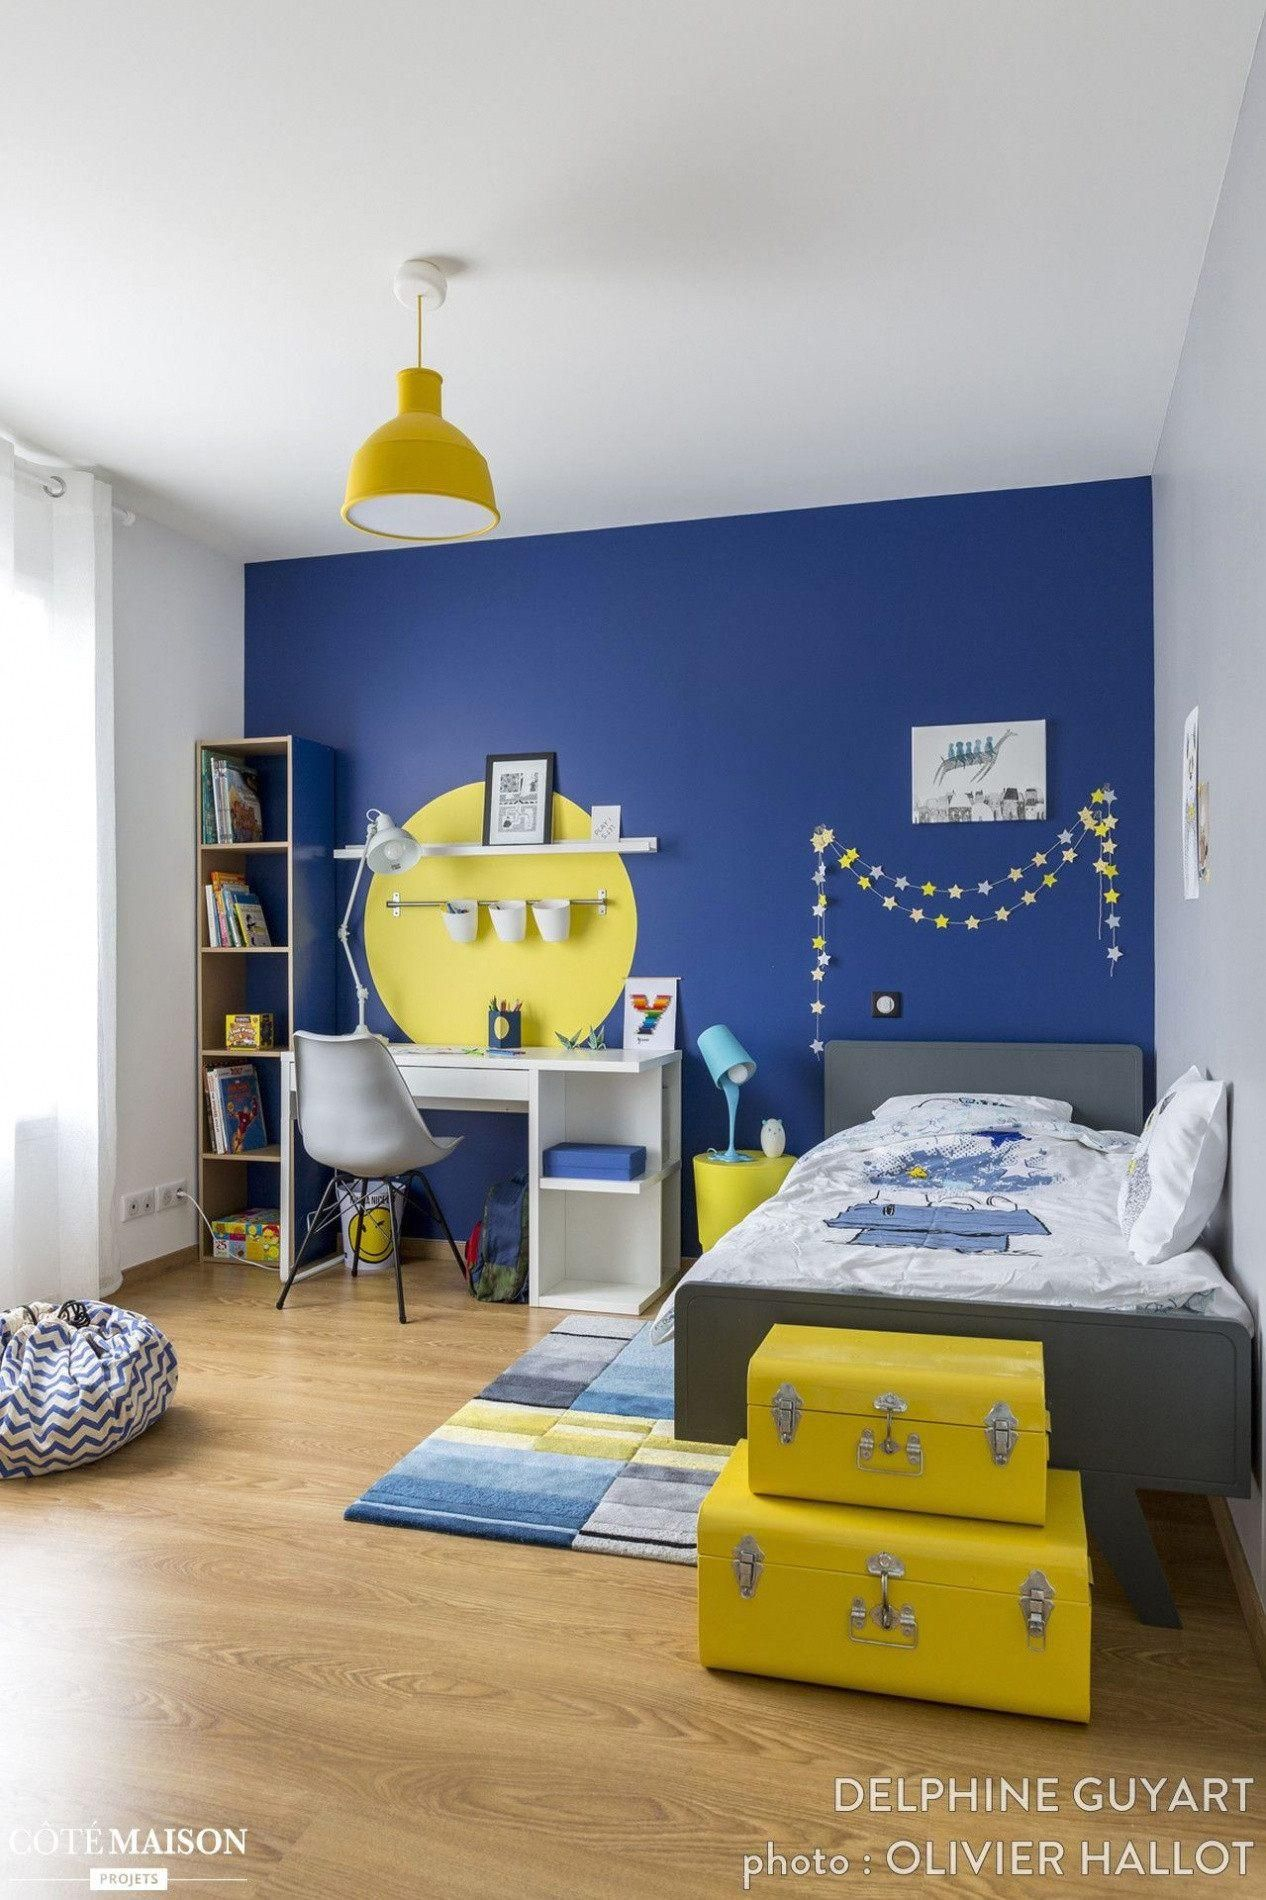 Fine Deco Chambre Garcon 3 Ans That You Must Know You Re In Good